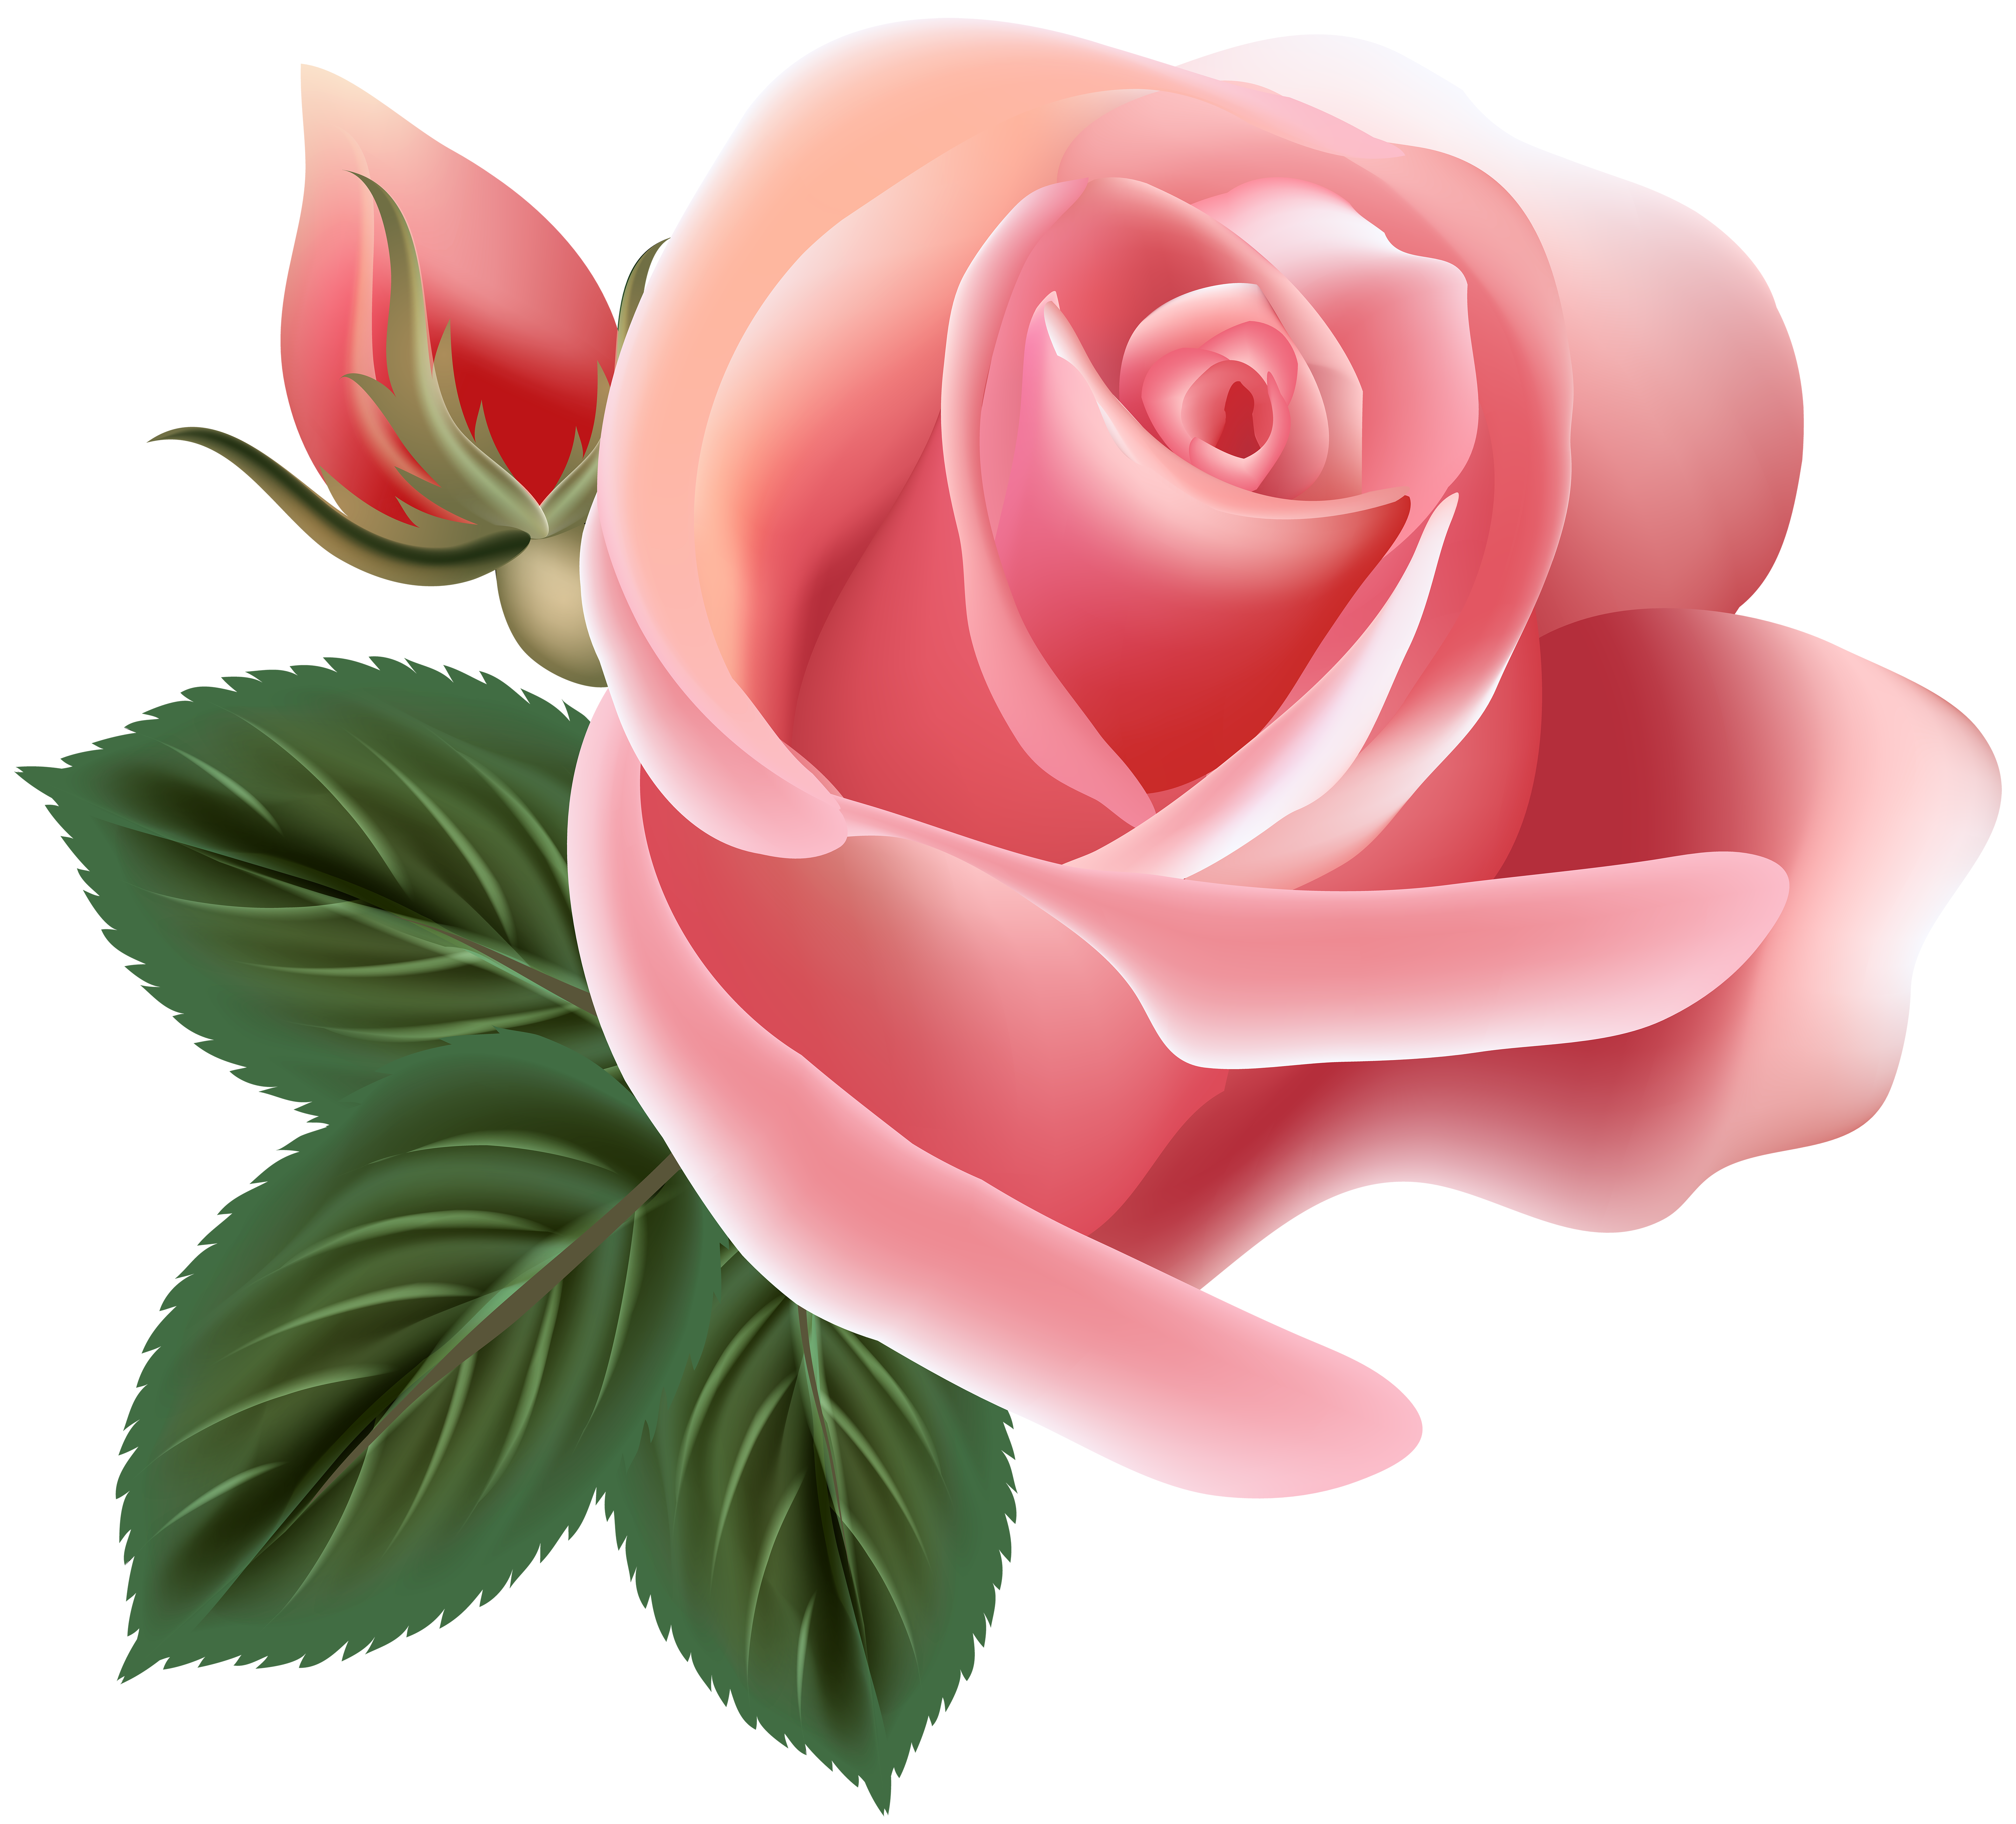 Flower clipart rose png Pin by Татьяна Саенко on фотошоп | Pinterest | Clip art, Pink roses ... png